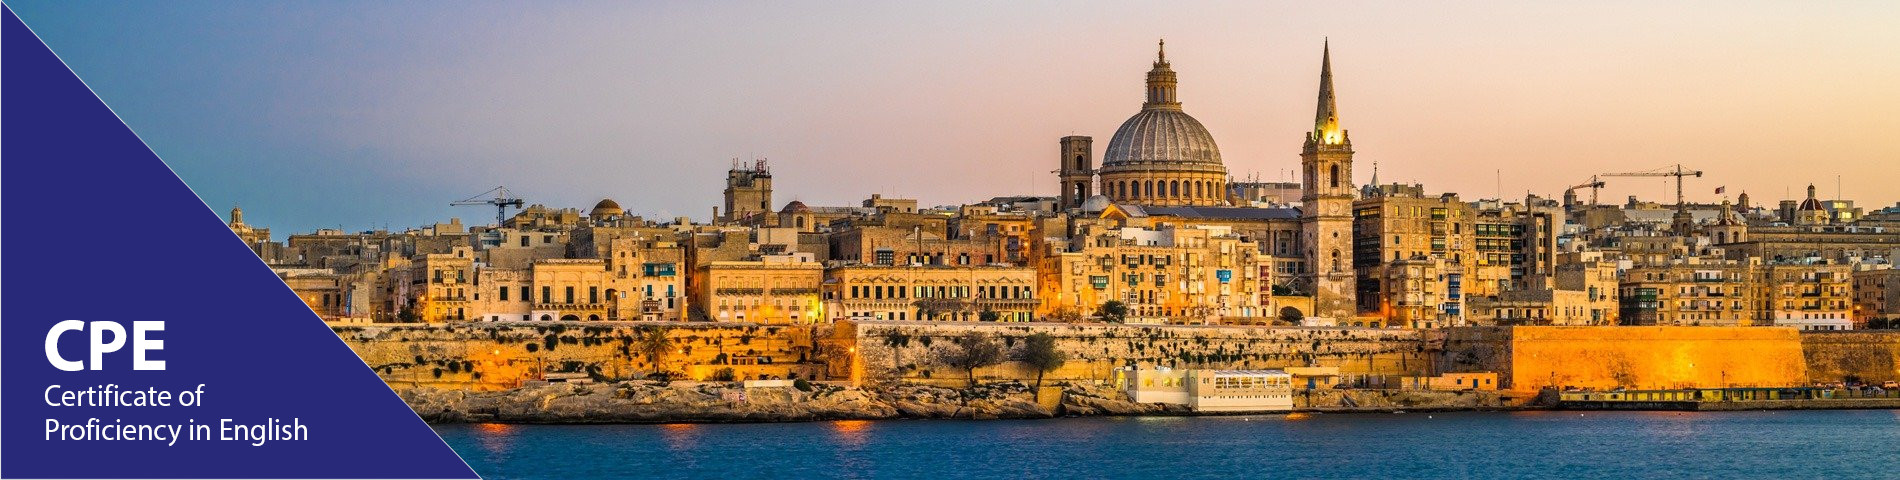 Sliema - Certifikát Cambridge Proficiency